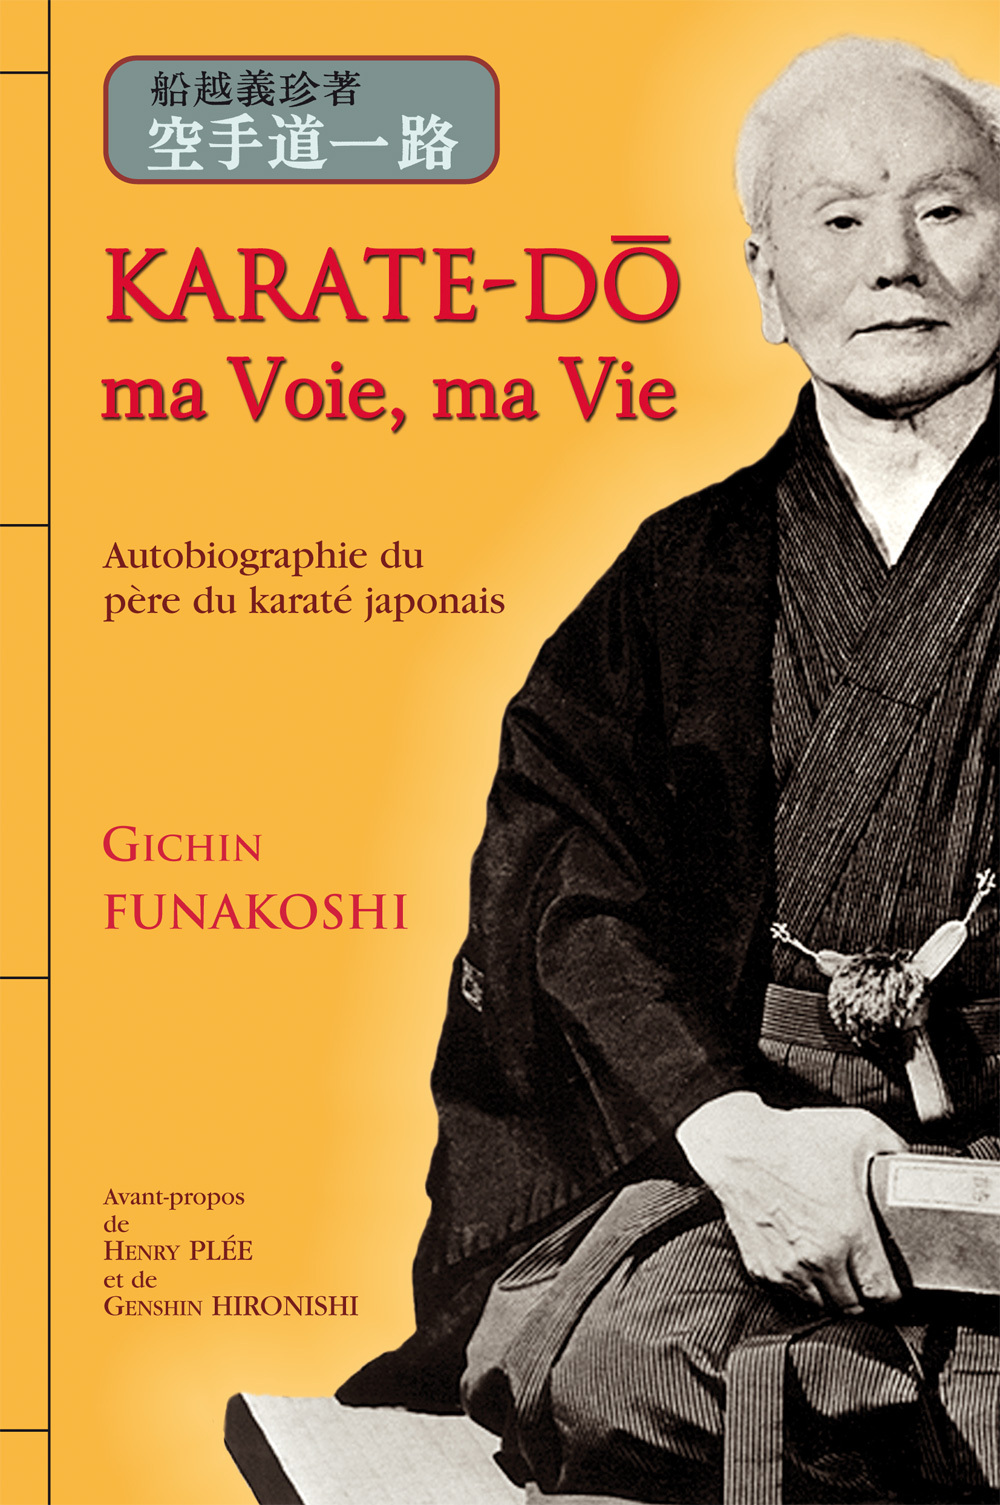 KARATE-DO MA VOIE - MA VIE